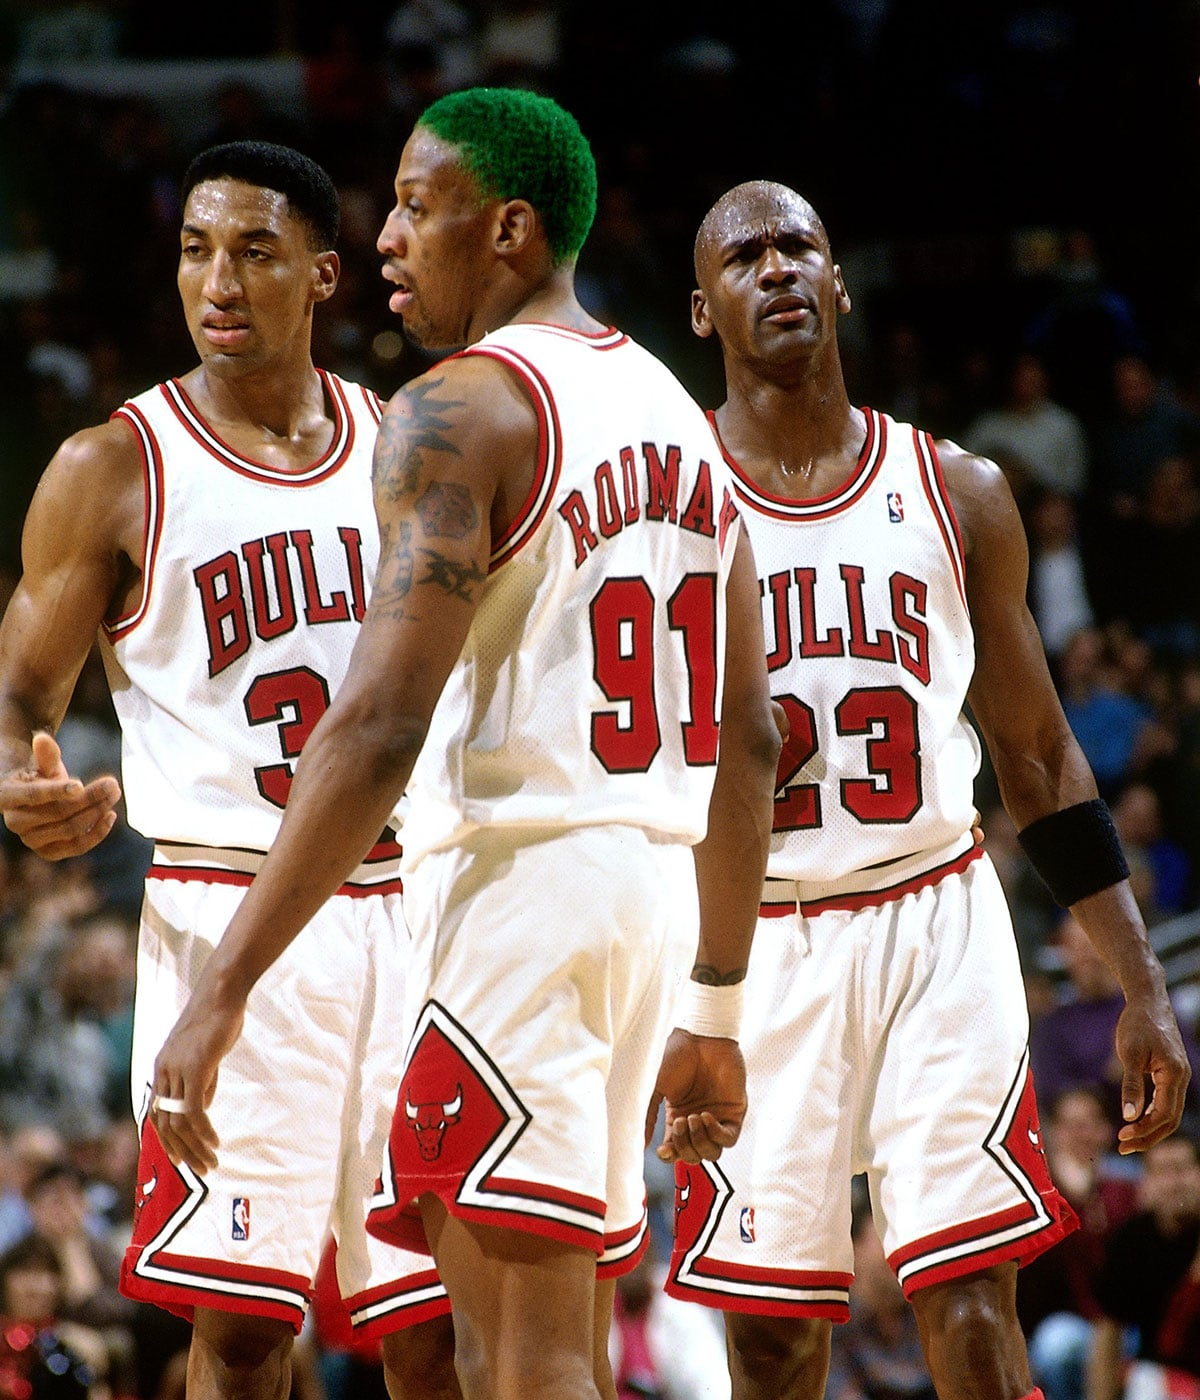 Scottie Pippen #33, Dennis Rodman #91, and Michael Jordan #23 of the Chicago Bulls catch their breath during a 1996 NBA game at the United Center in Chicago, Illinois.